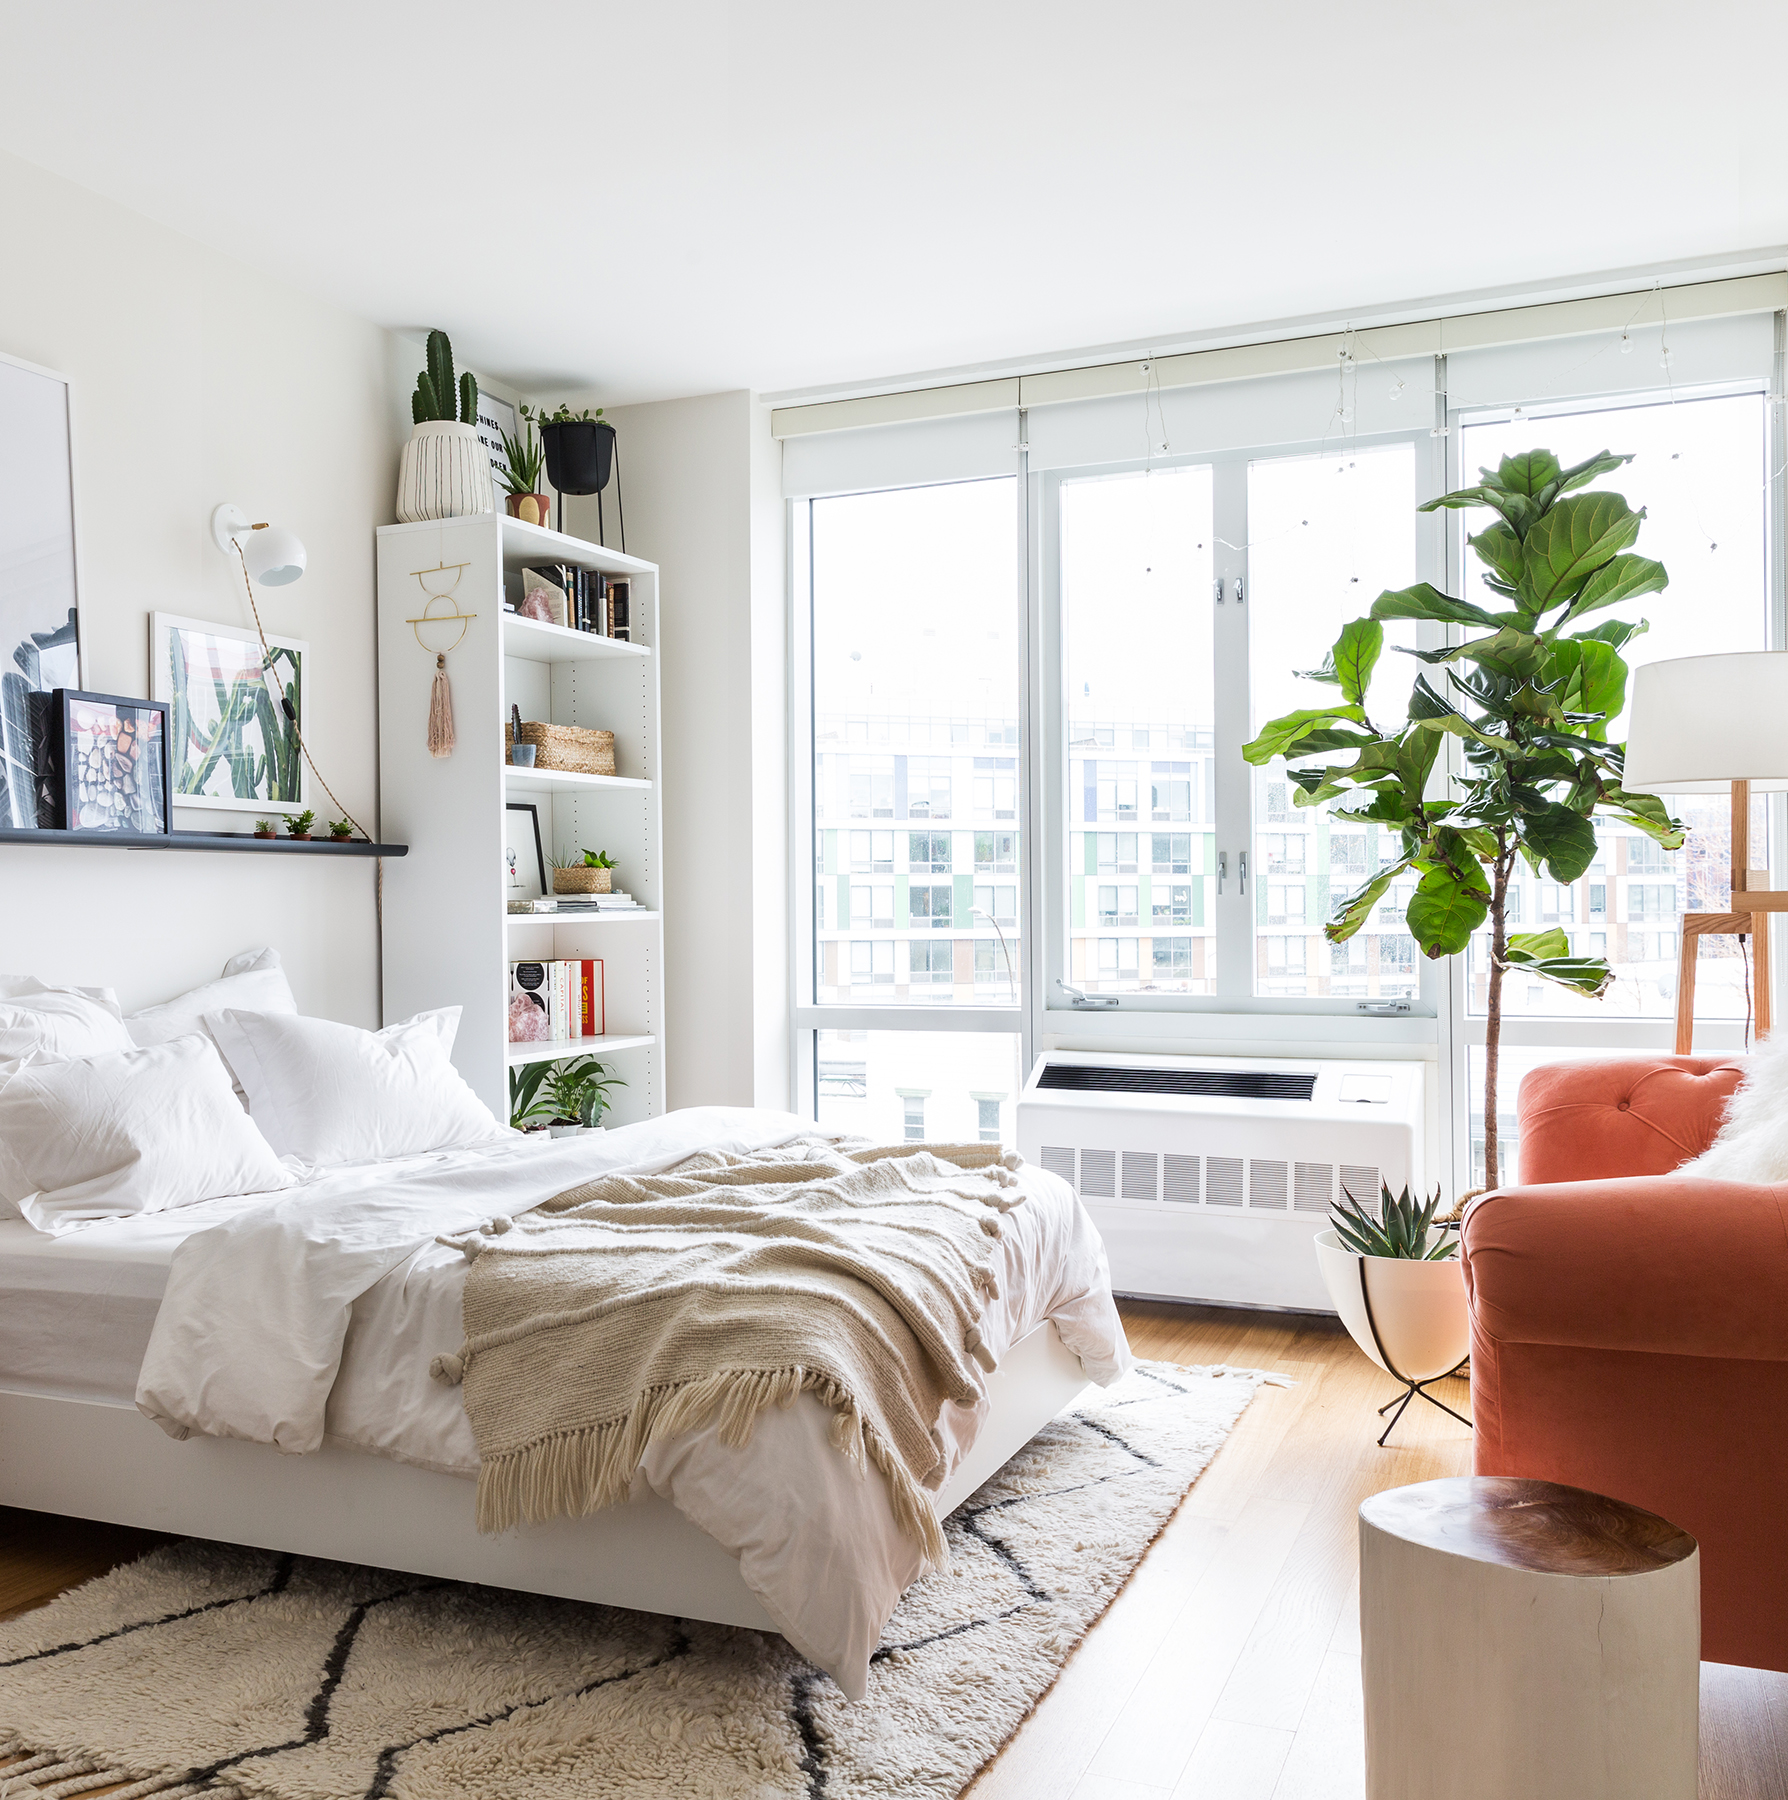 Bedroom with air vent and fig tree